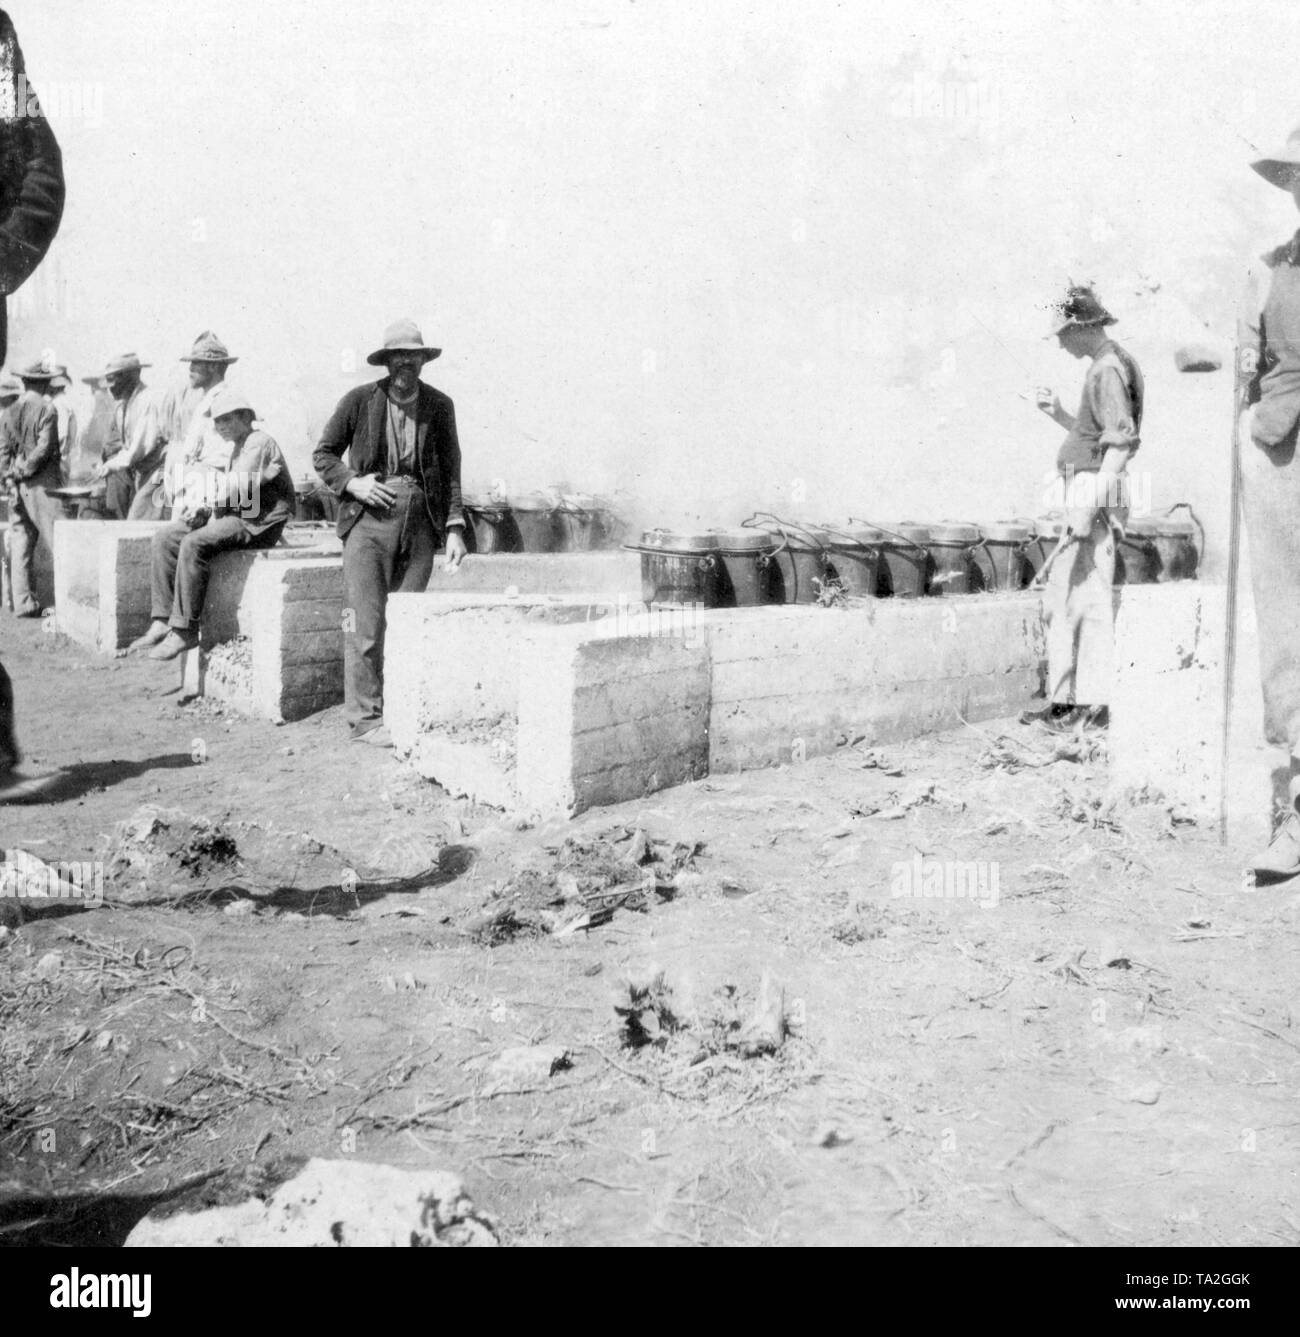 Captive Boers, concentration camps 1899-1902: Boers in a prison camp on the Bermudas - at the cooking area. - Stock Image